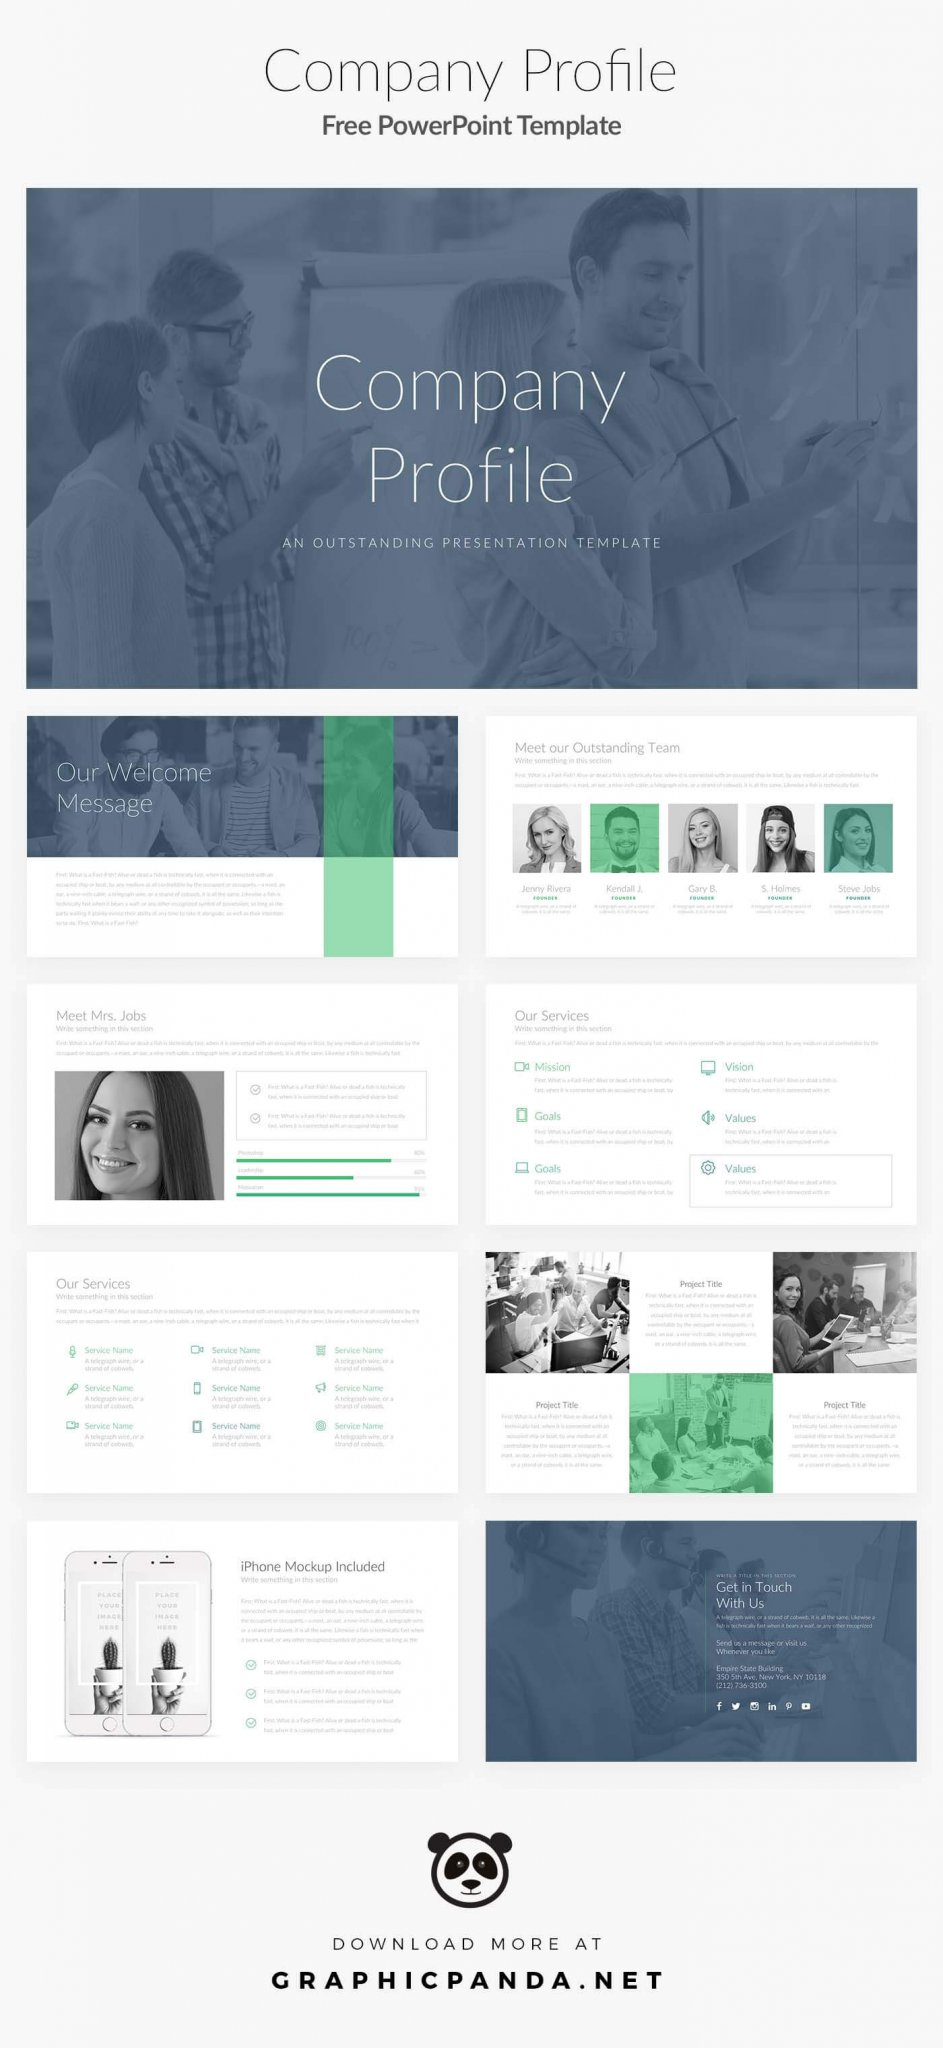 Free PowerPoint Template Company Profile - best free powerpoint template 2017